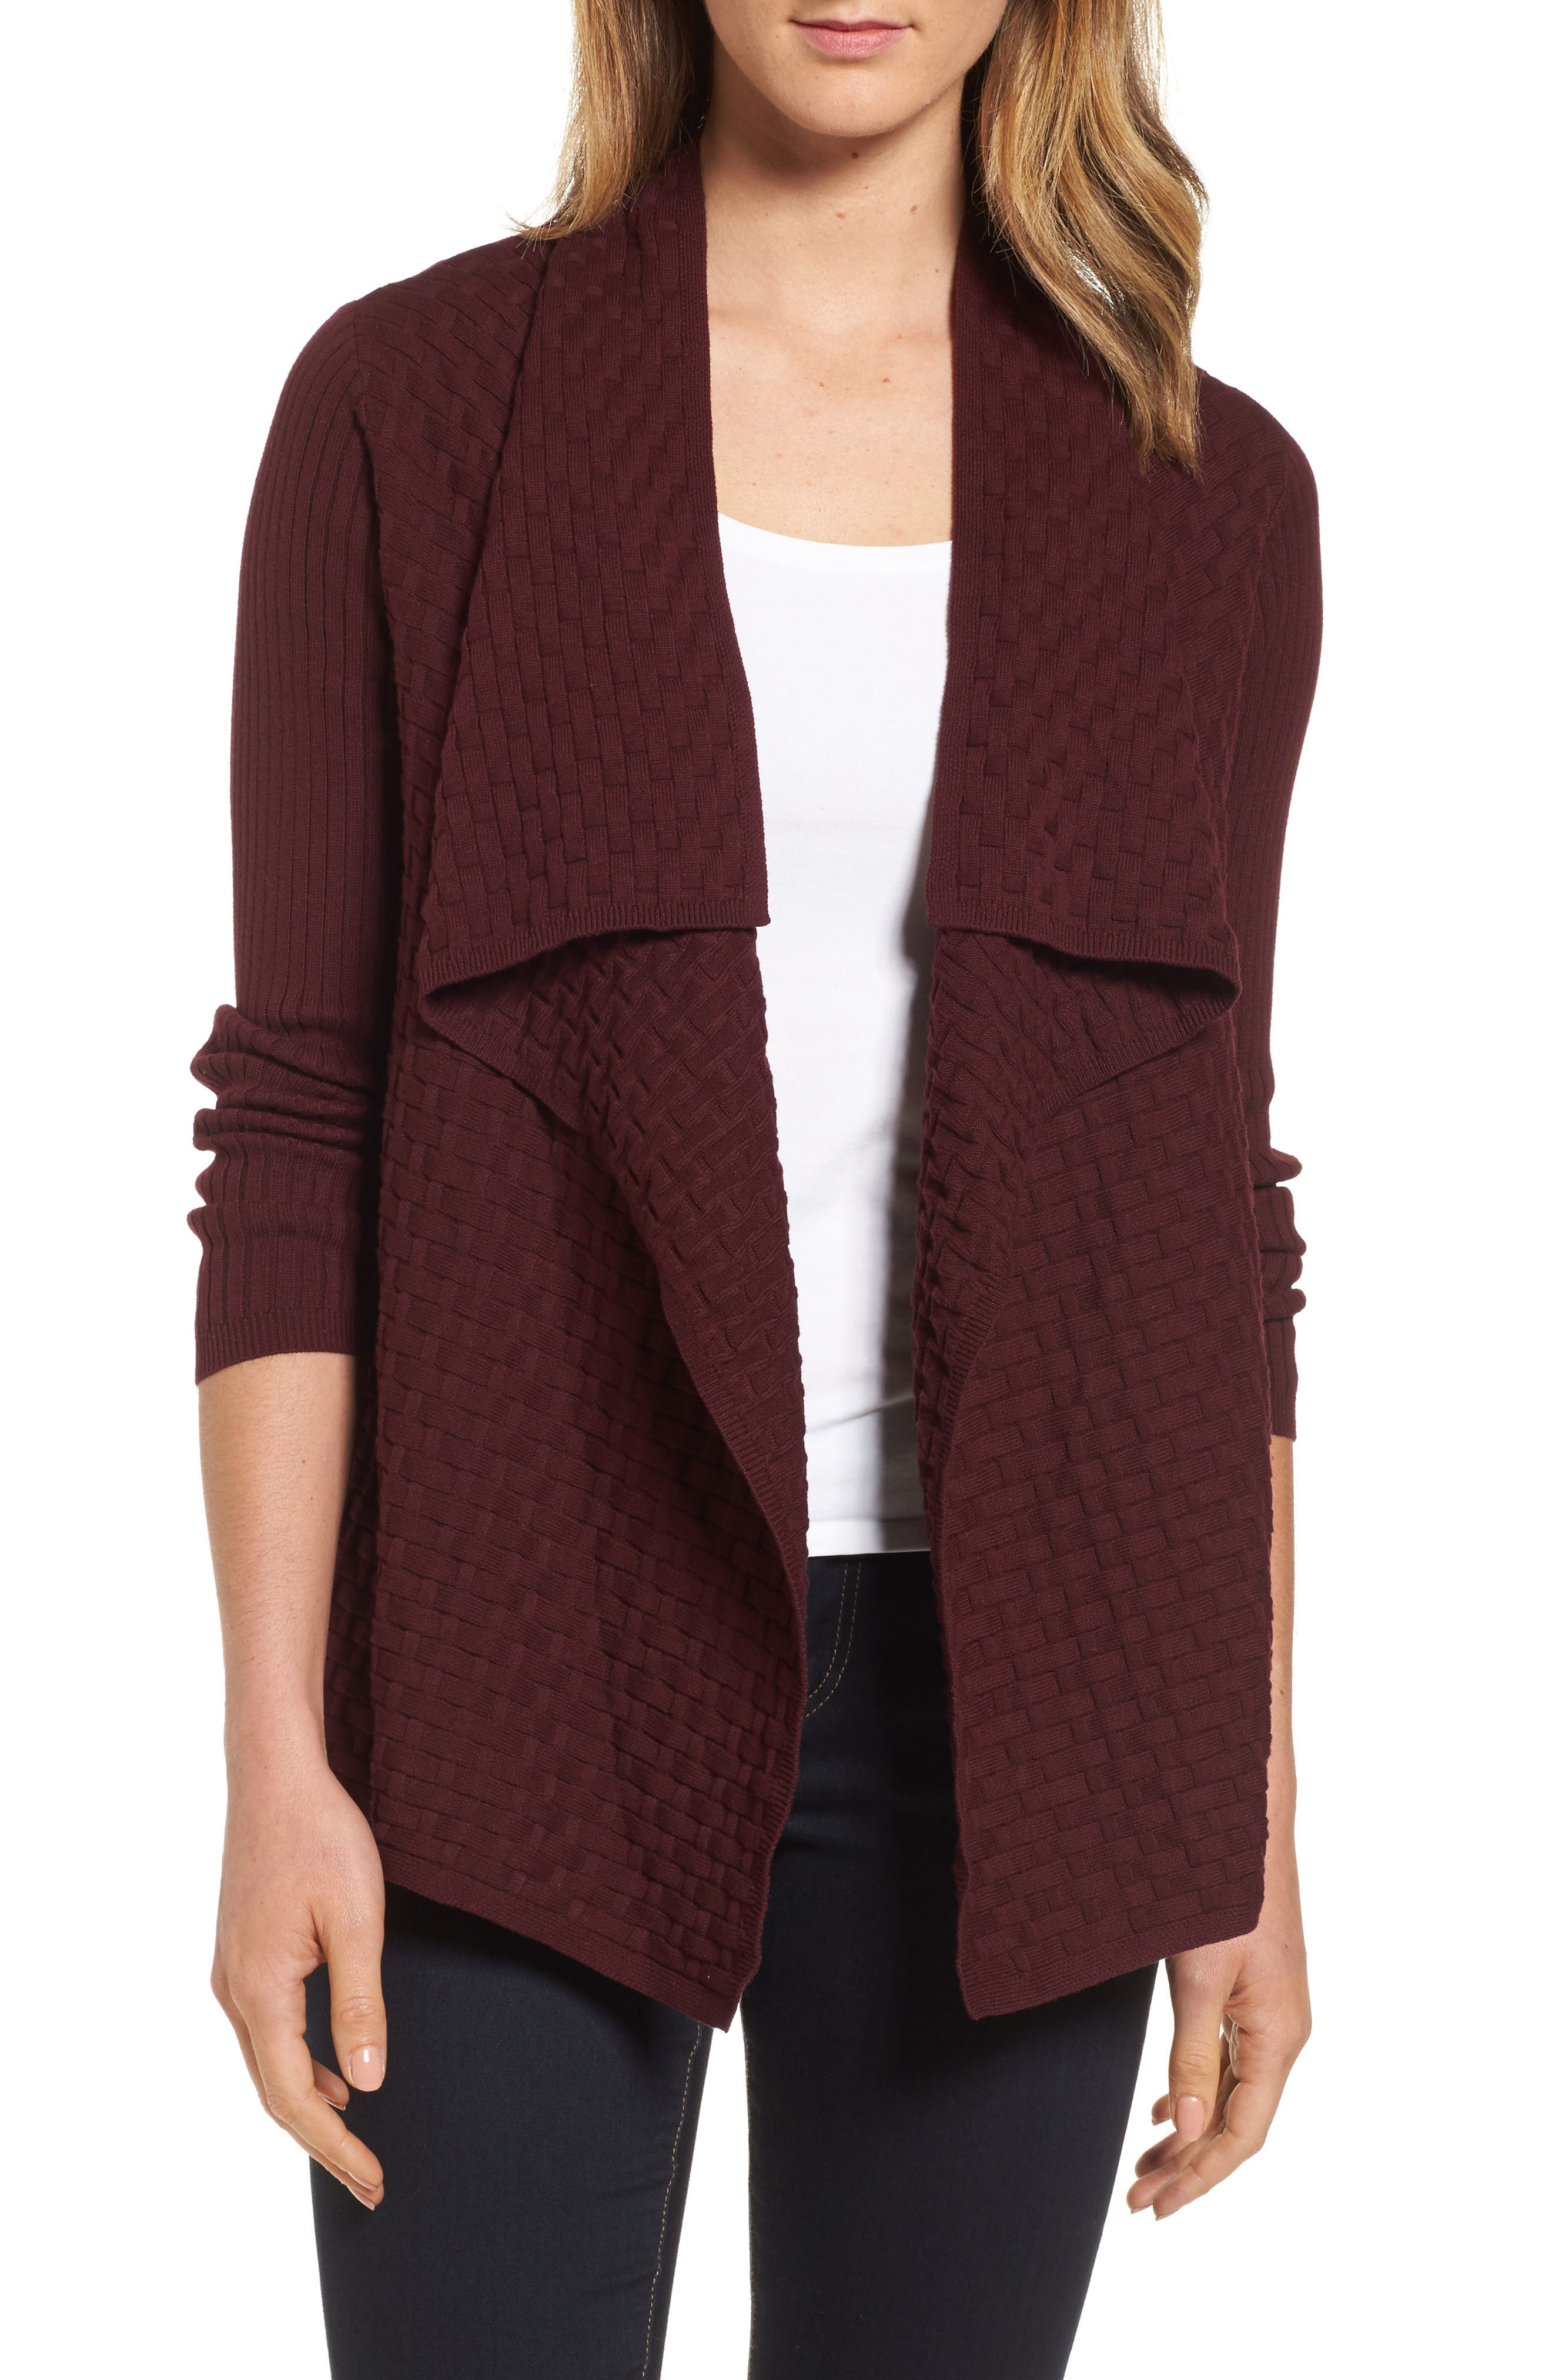 We consider the cardigan the casual jacket of the cool set! With hundreds of plus size cardigans from our more than brands, you're bound to find the right cardi for your lifestyle and body type.